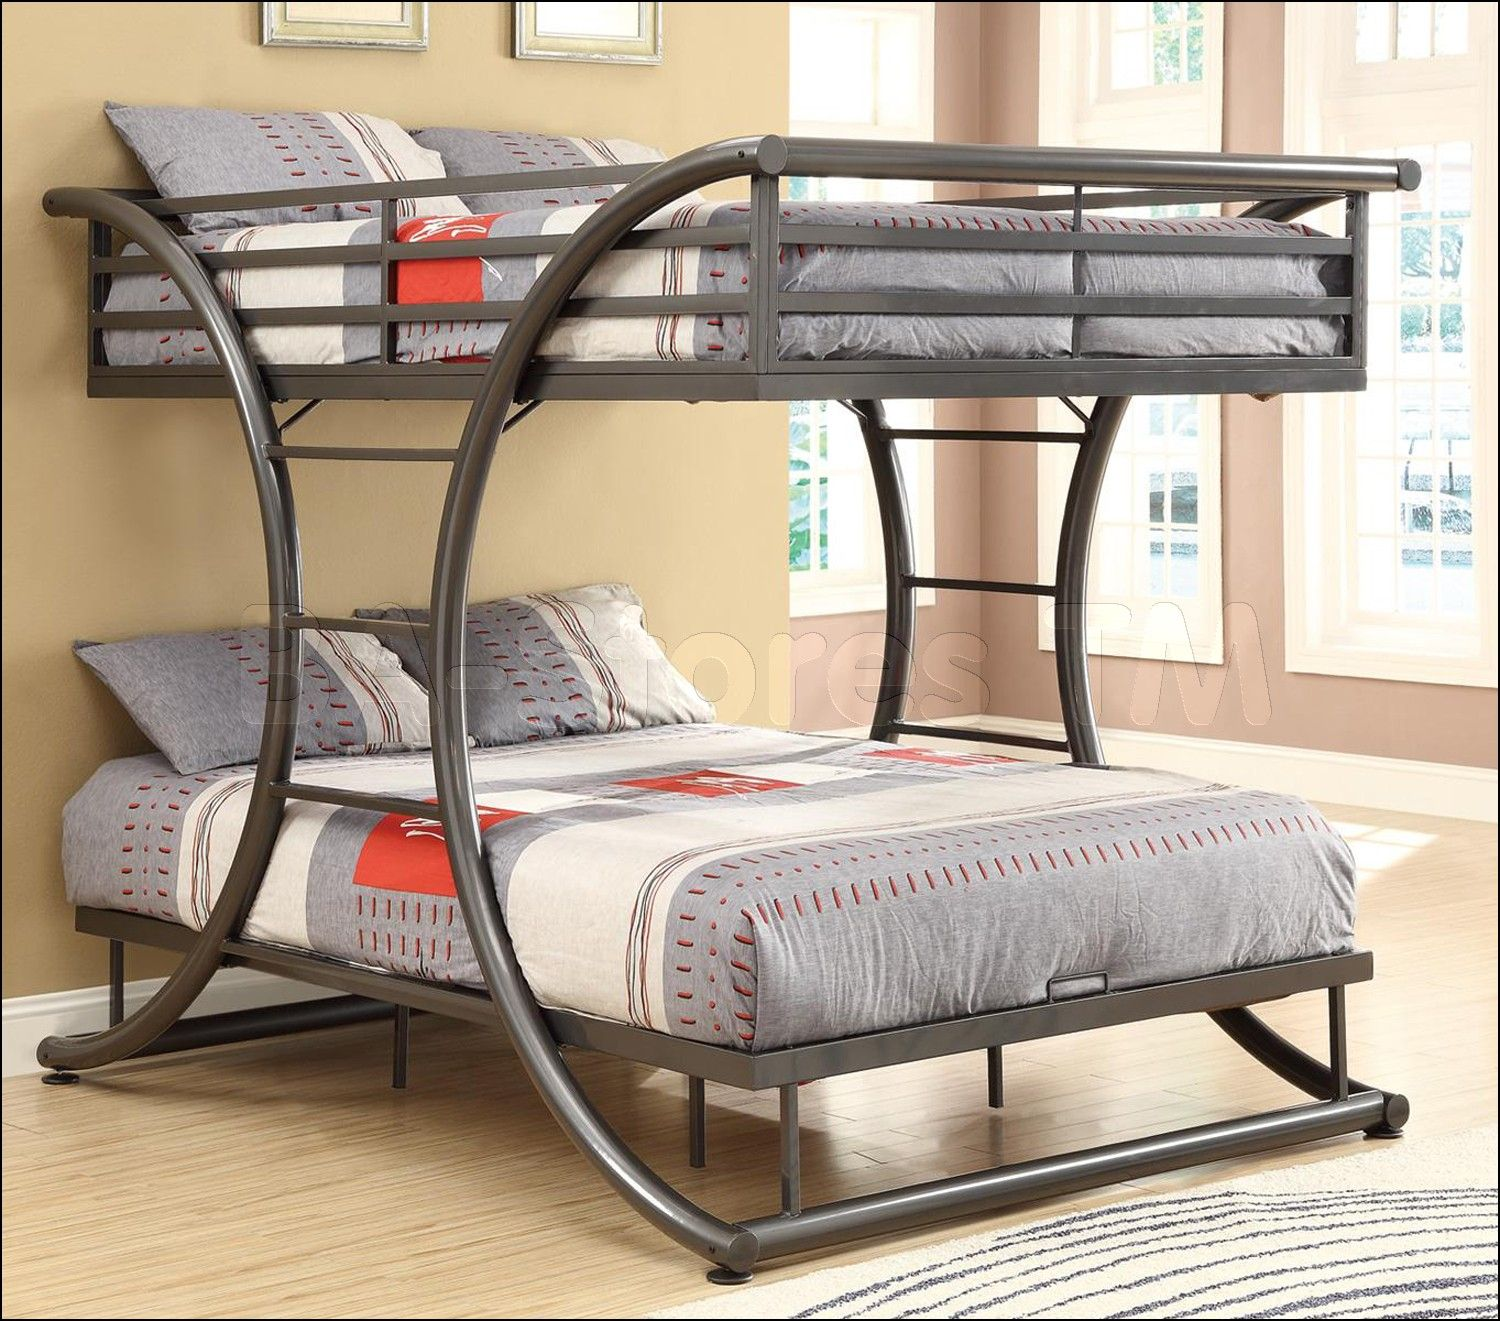 30 King Size Bunk Bed Interior Designs for Bedrooms Check more